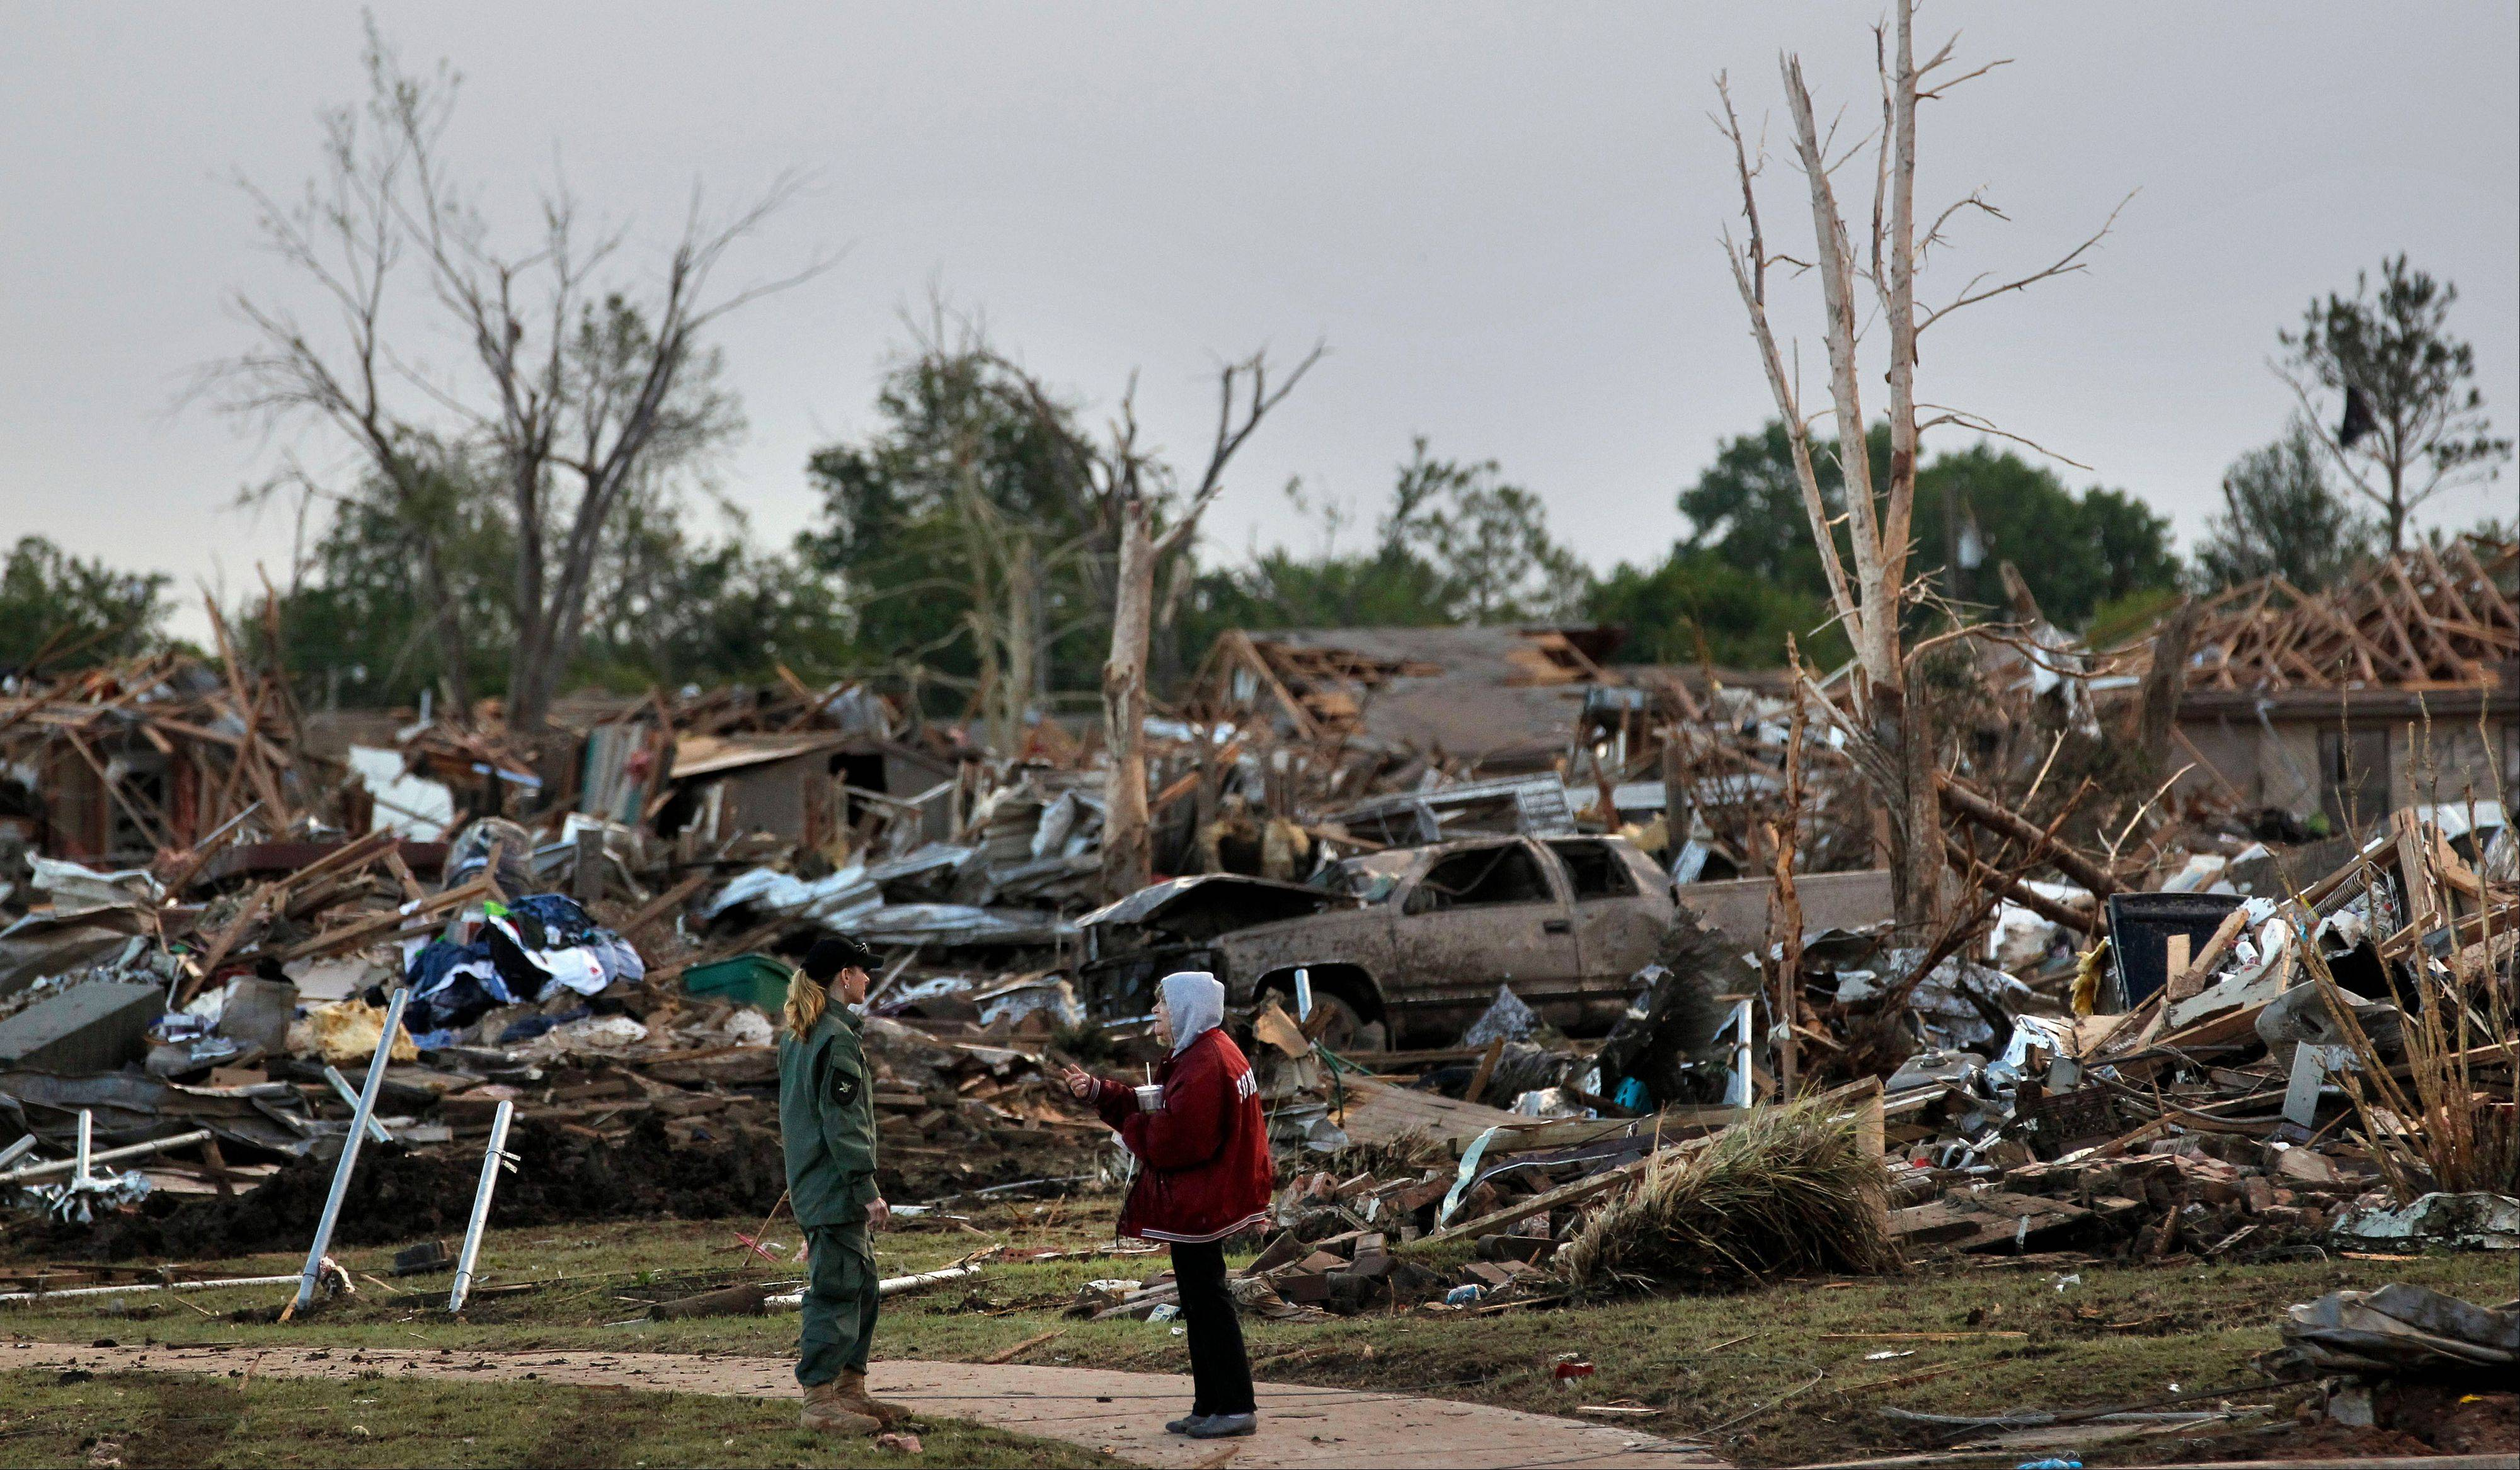 A member of a security team, left, talks with a local resident amid the rubble of destroyed homes, Tuesday May 21, 2013 in Moore, Okla. Monday a massive tornado moved through Moore, Okla., flattening entire neighborhoods.